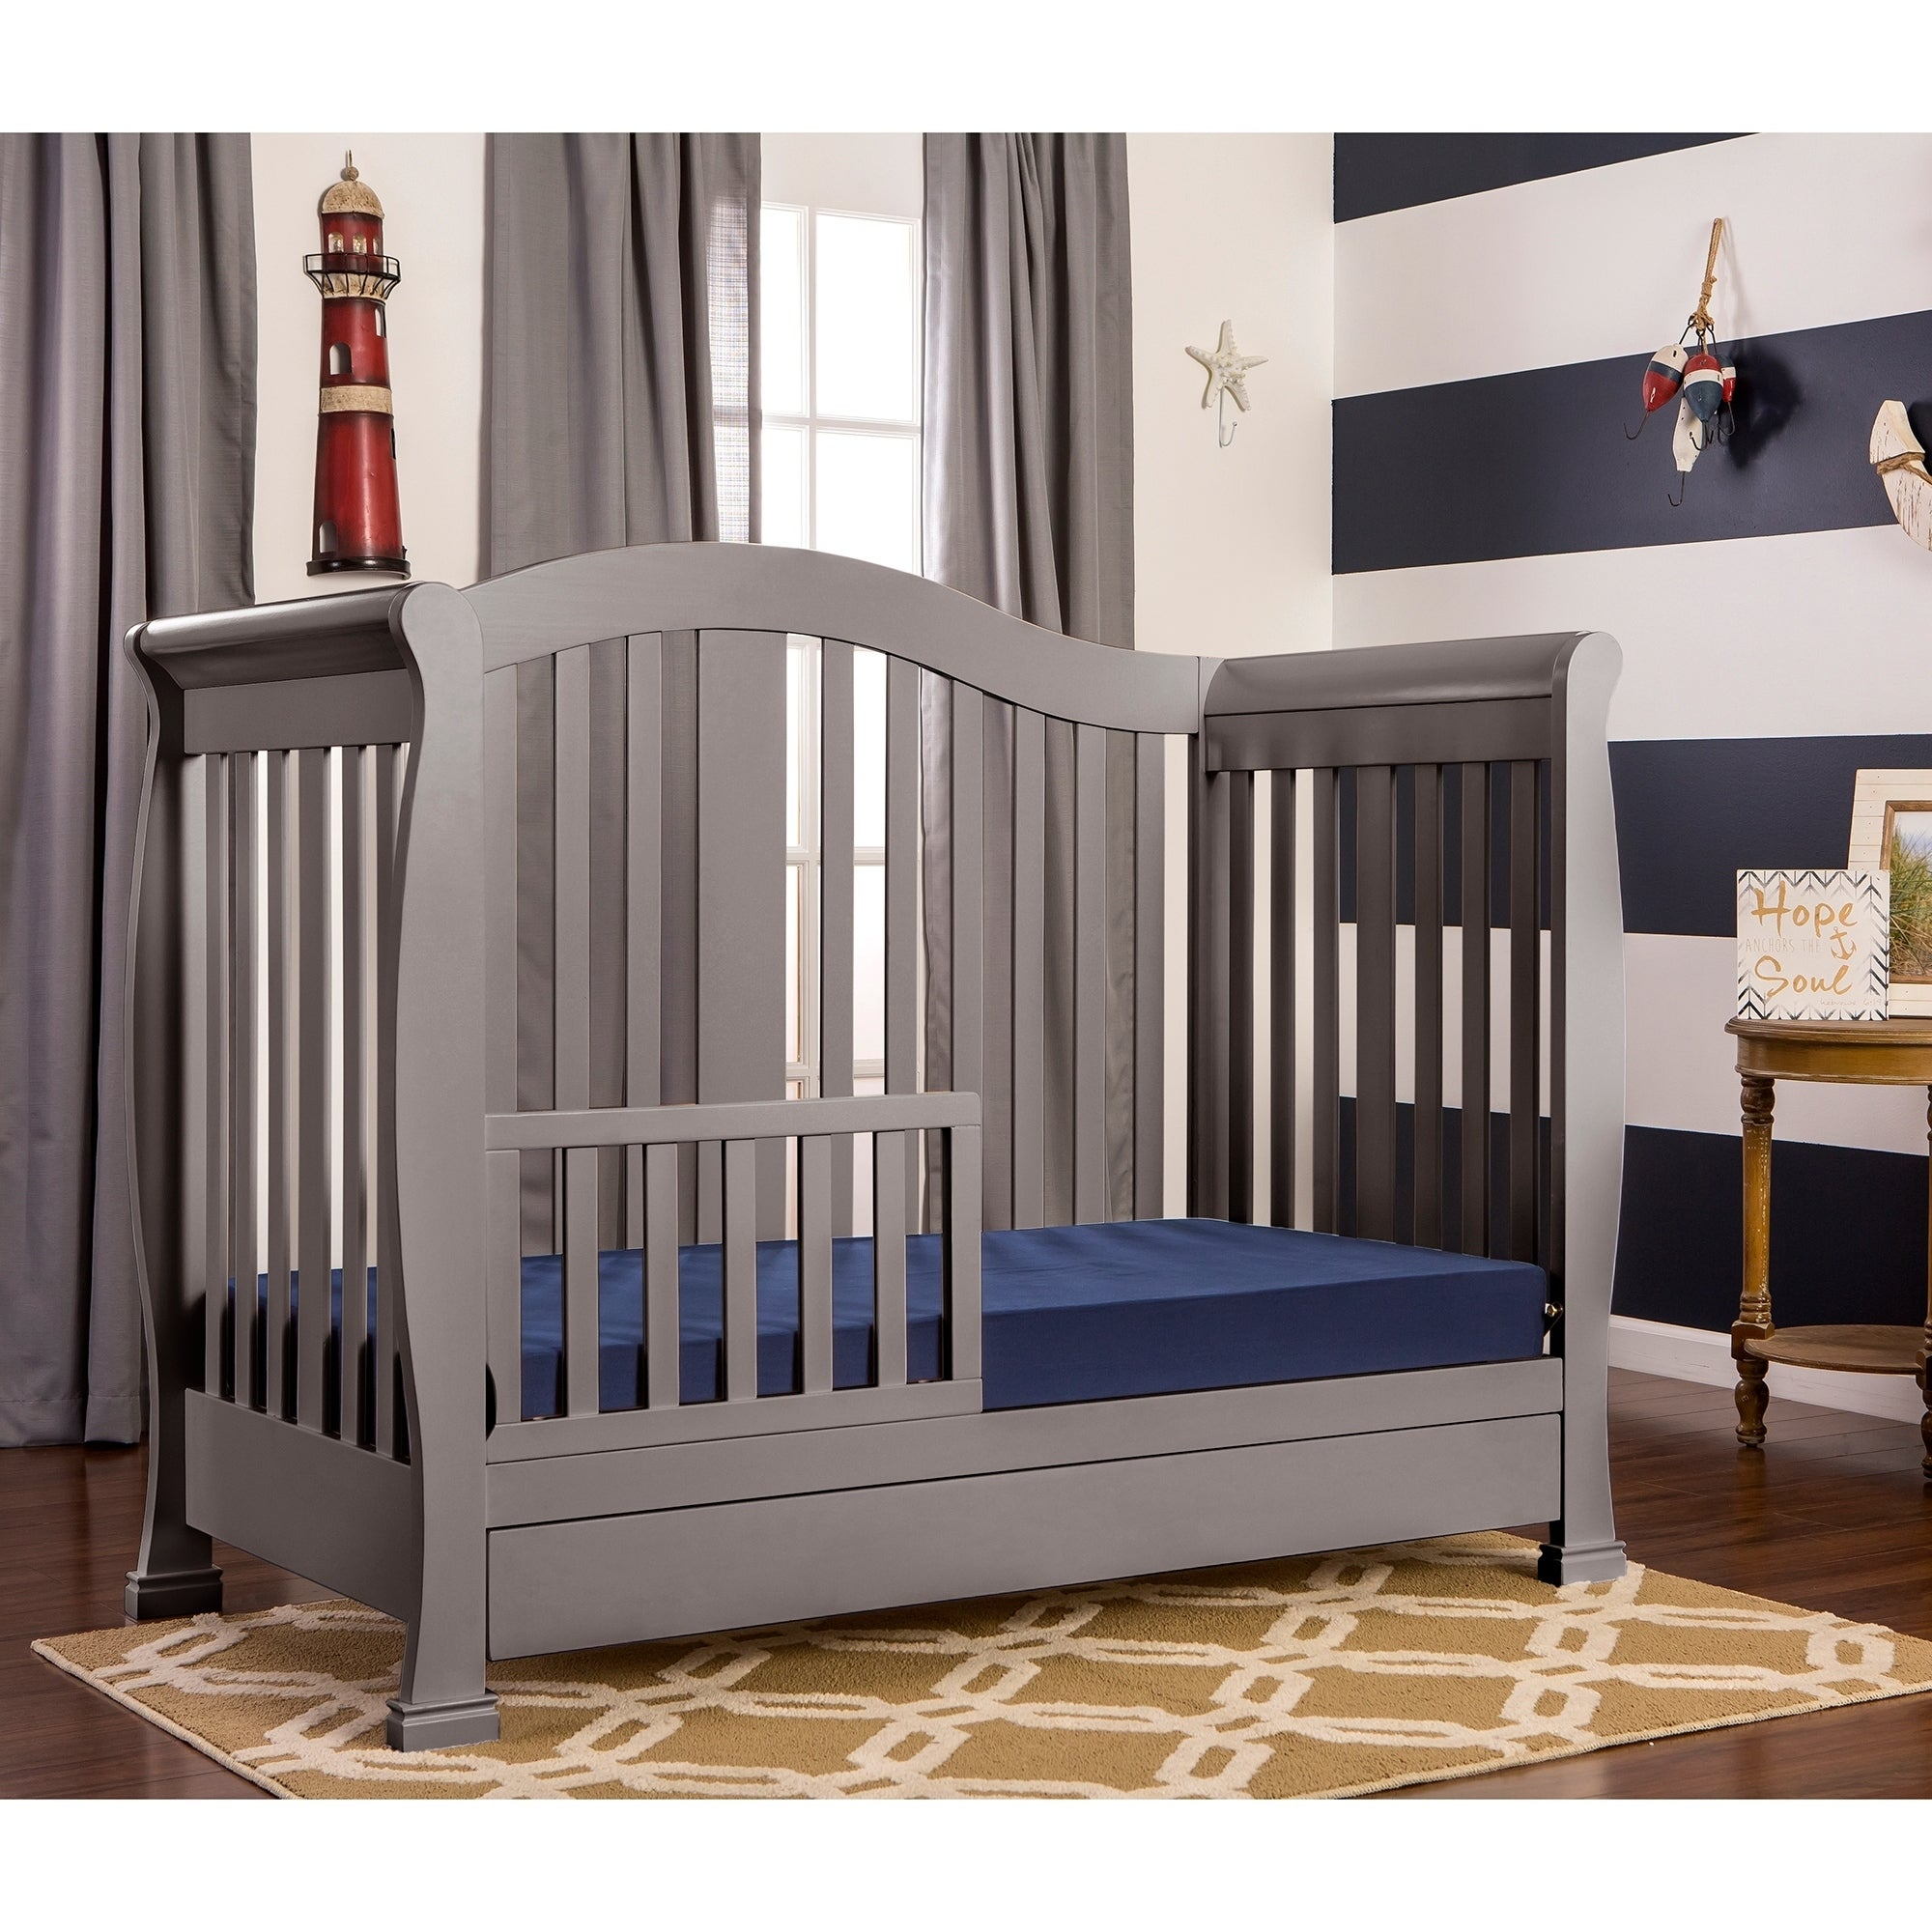 mini cribs rustic crib oxford with grey dream delta in changing table target convertible baby imagodeiarts org s